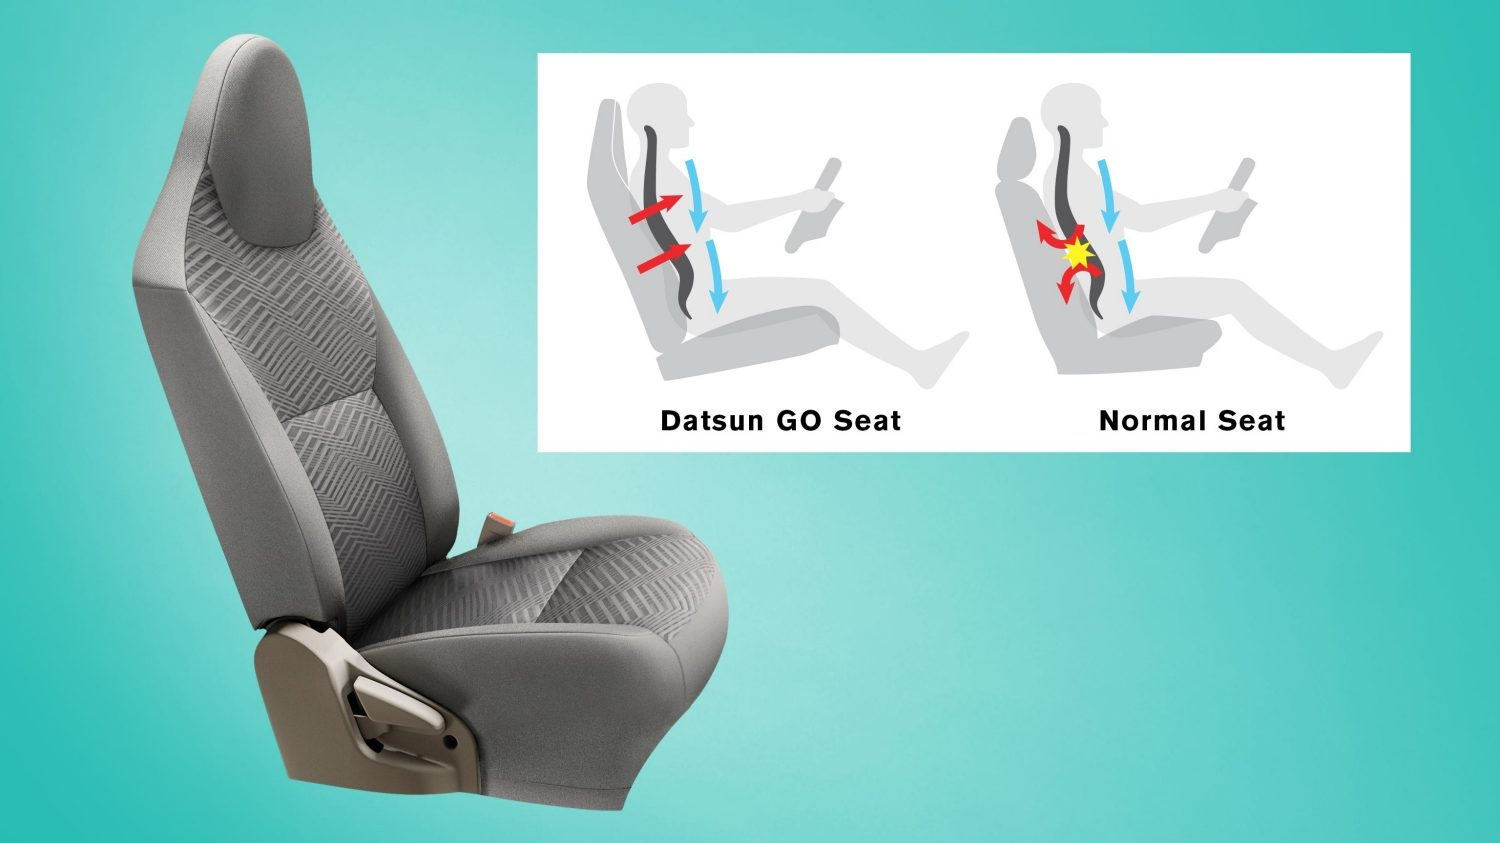 LOW-FATIGUE SEAT DESIGN